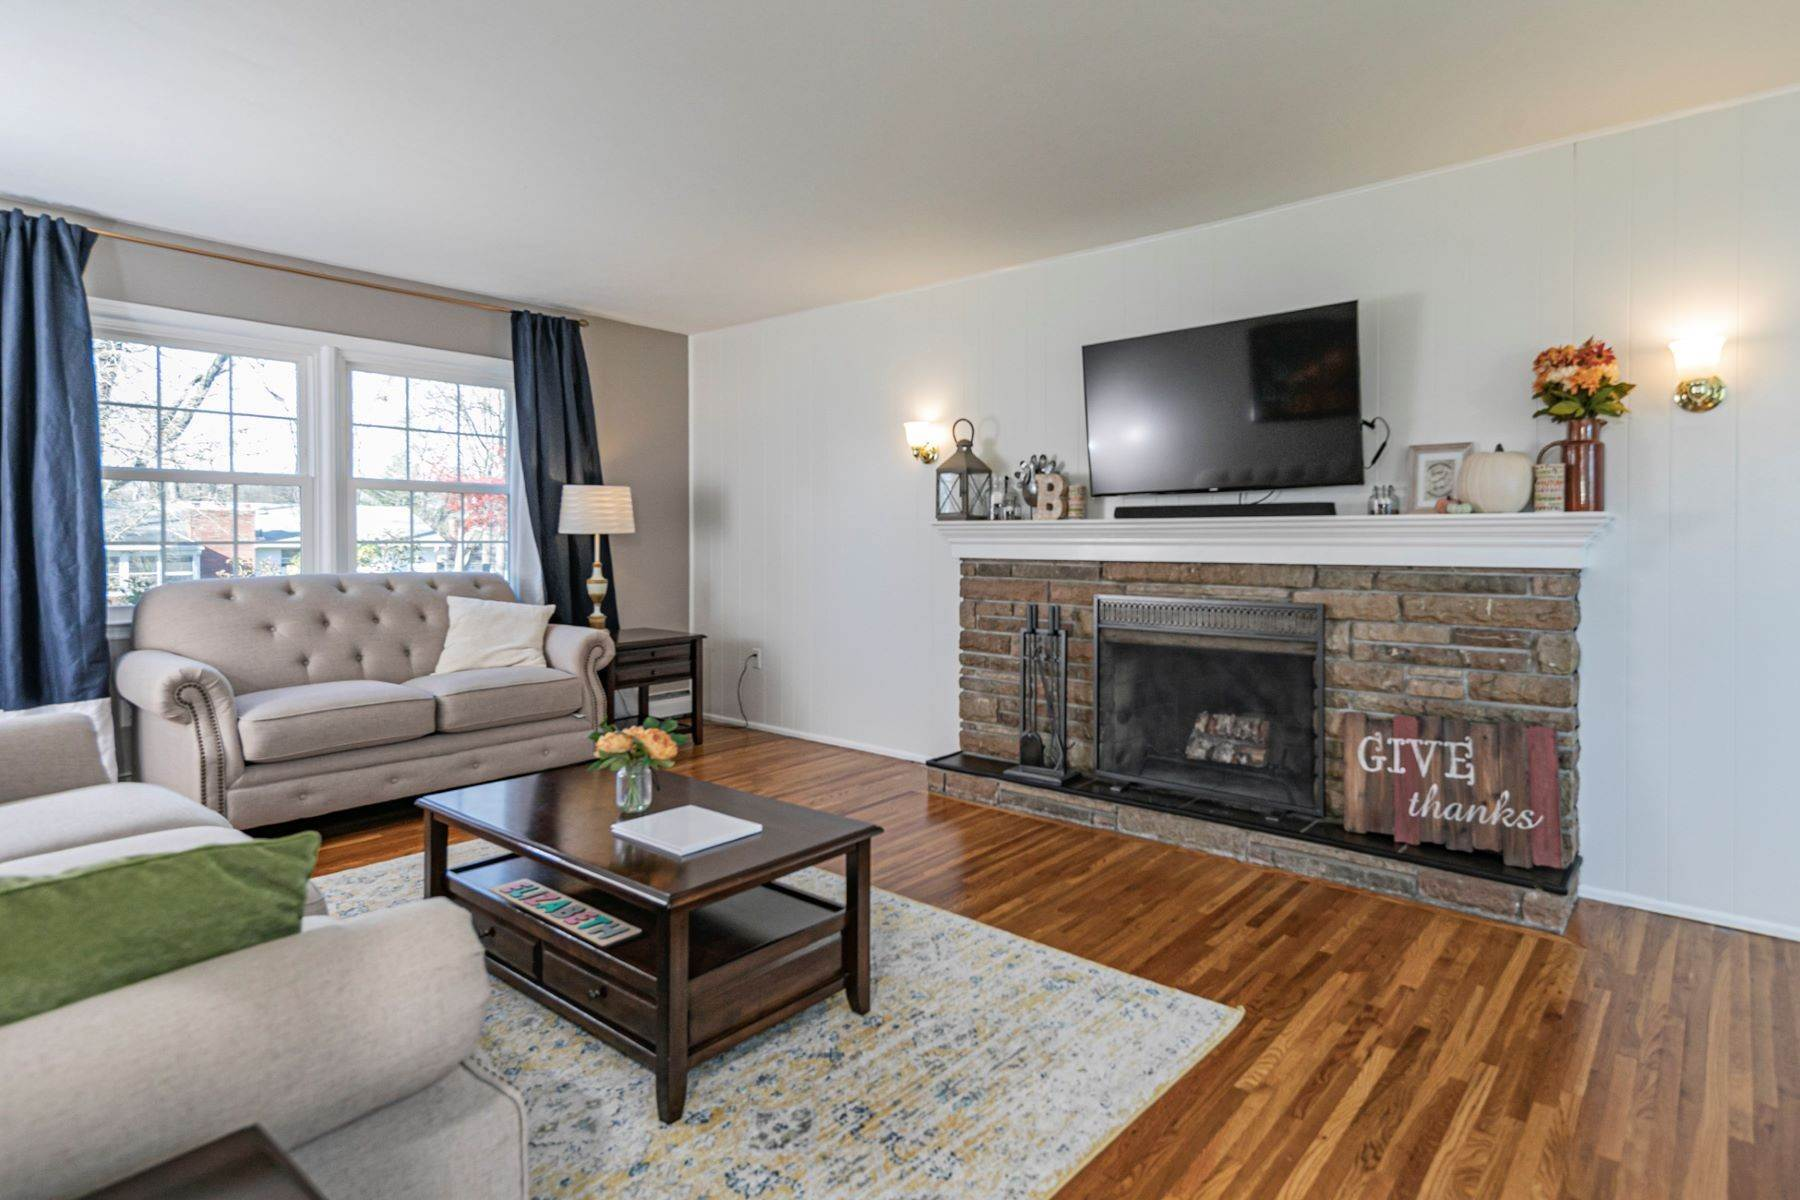 5. Single Family Homes for Sale at Pristine and Stylish, with Sunshine for Days 88 Mountainview Road, Ewing, New Jersey 08628 United States